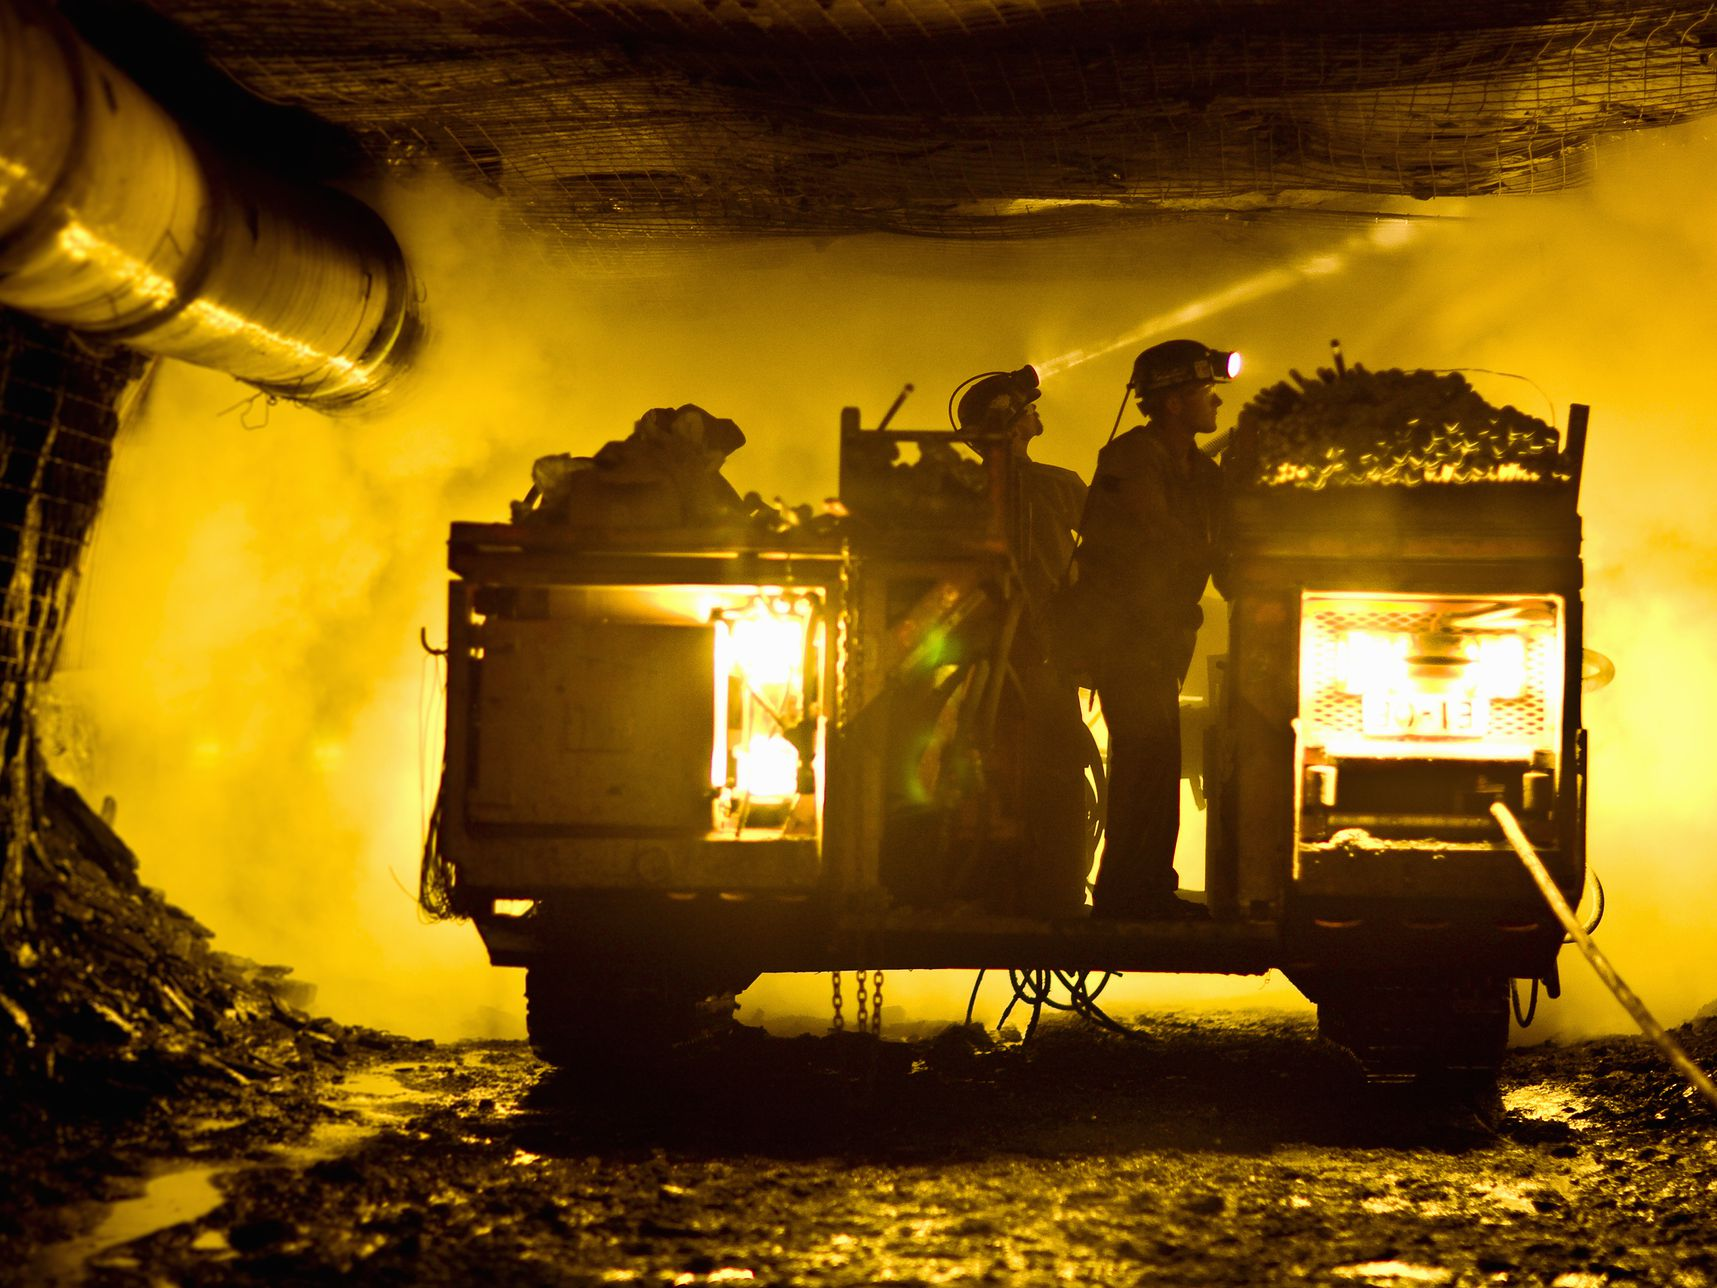 The Most Common Accidents in the Mining Industry